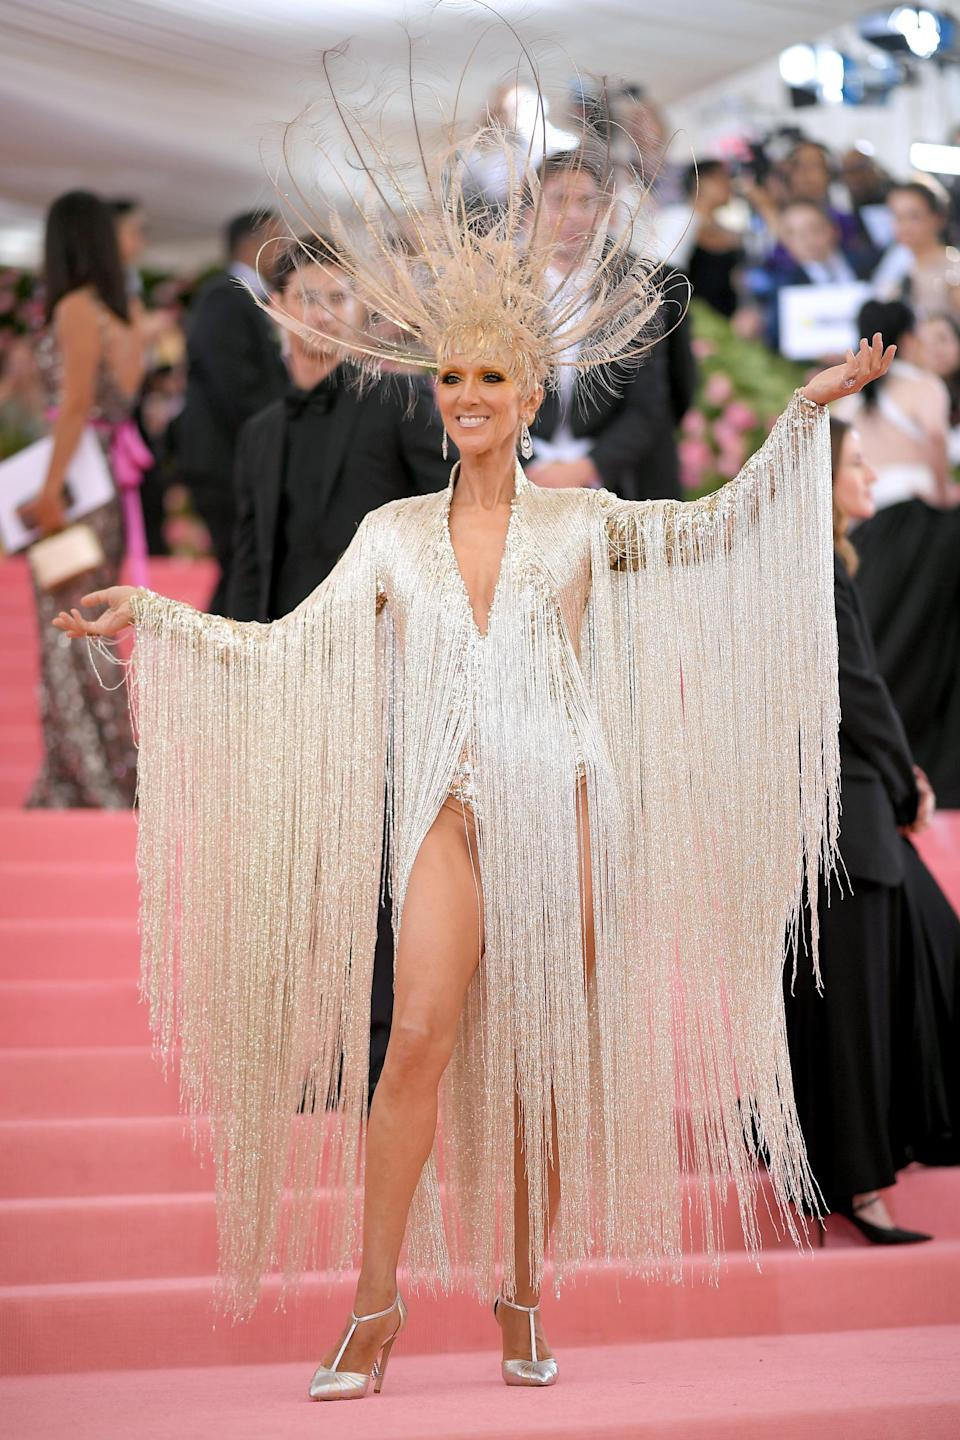 Celine Dion at the 2019 Met Gala (Getty Images)